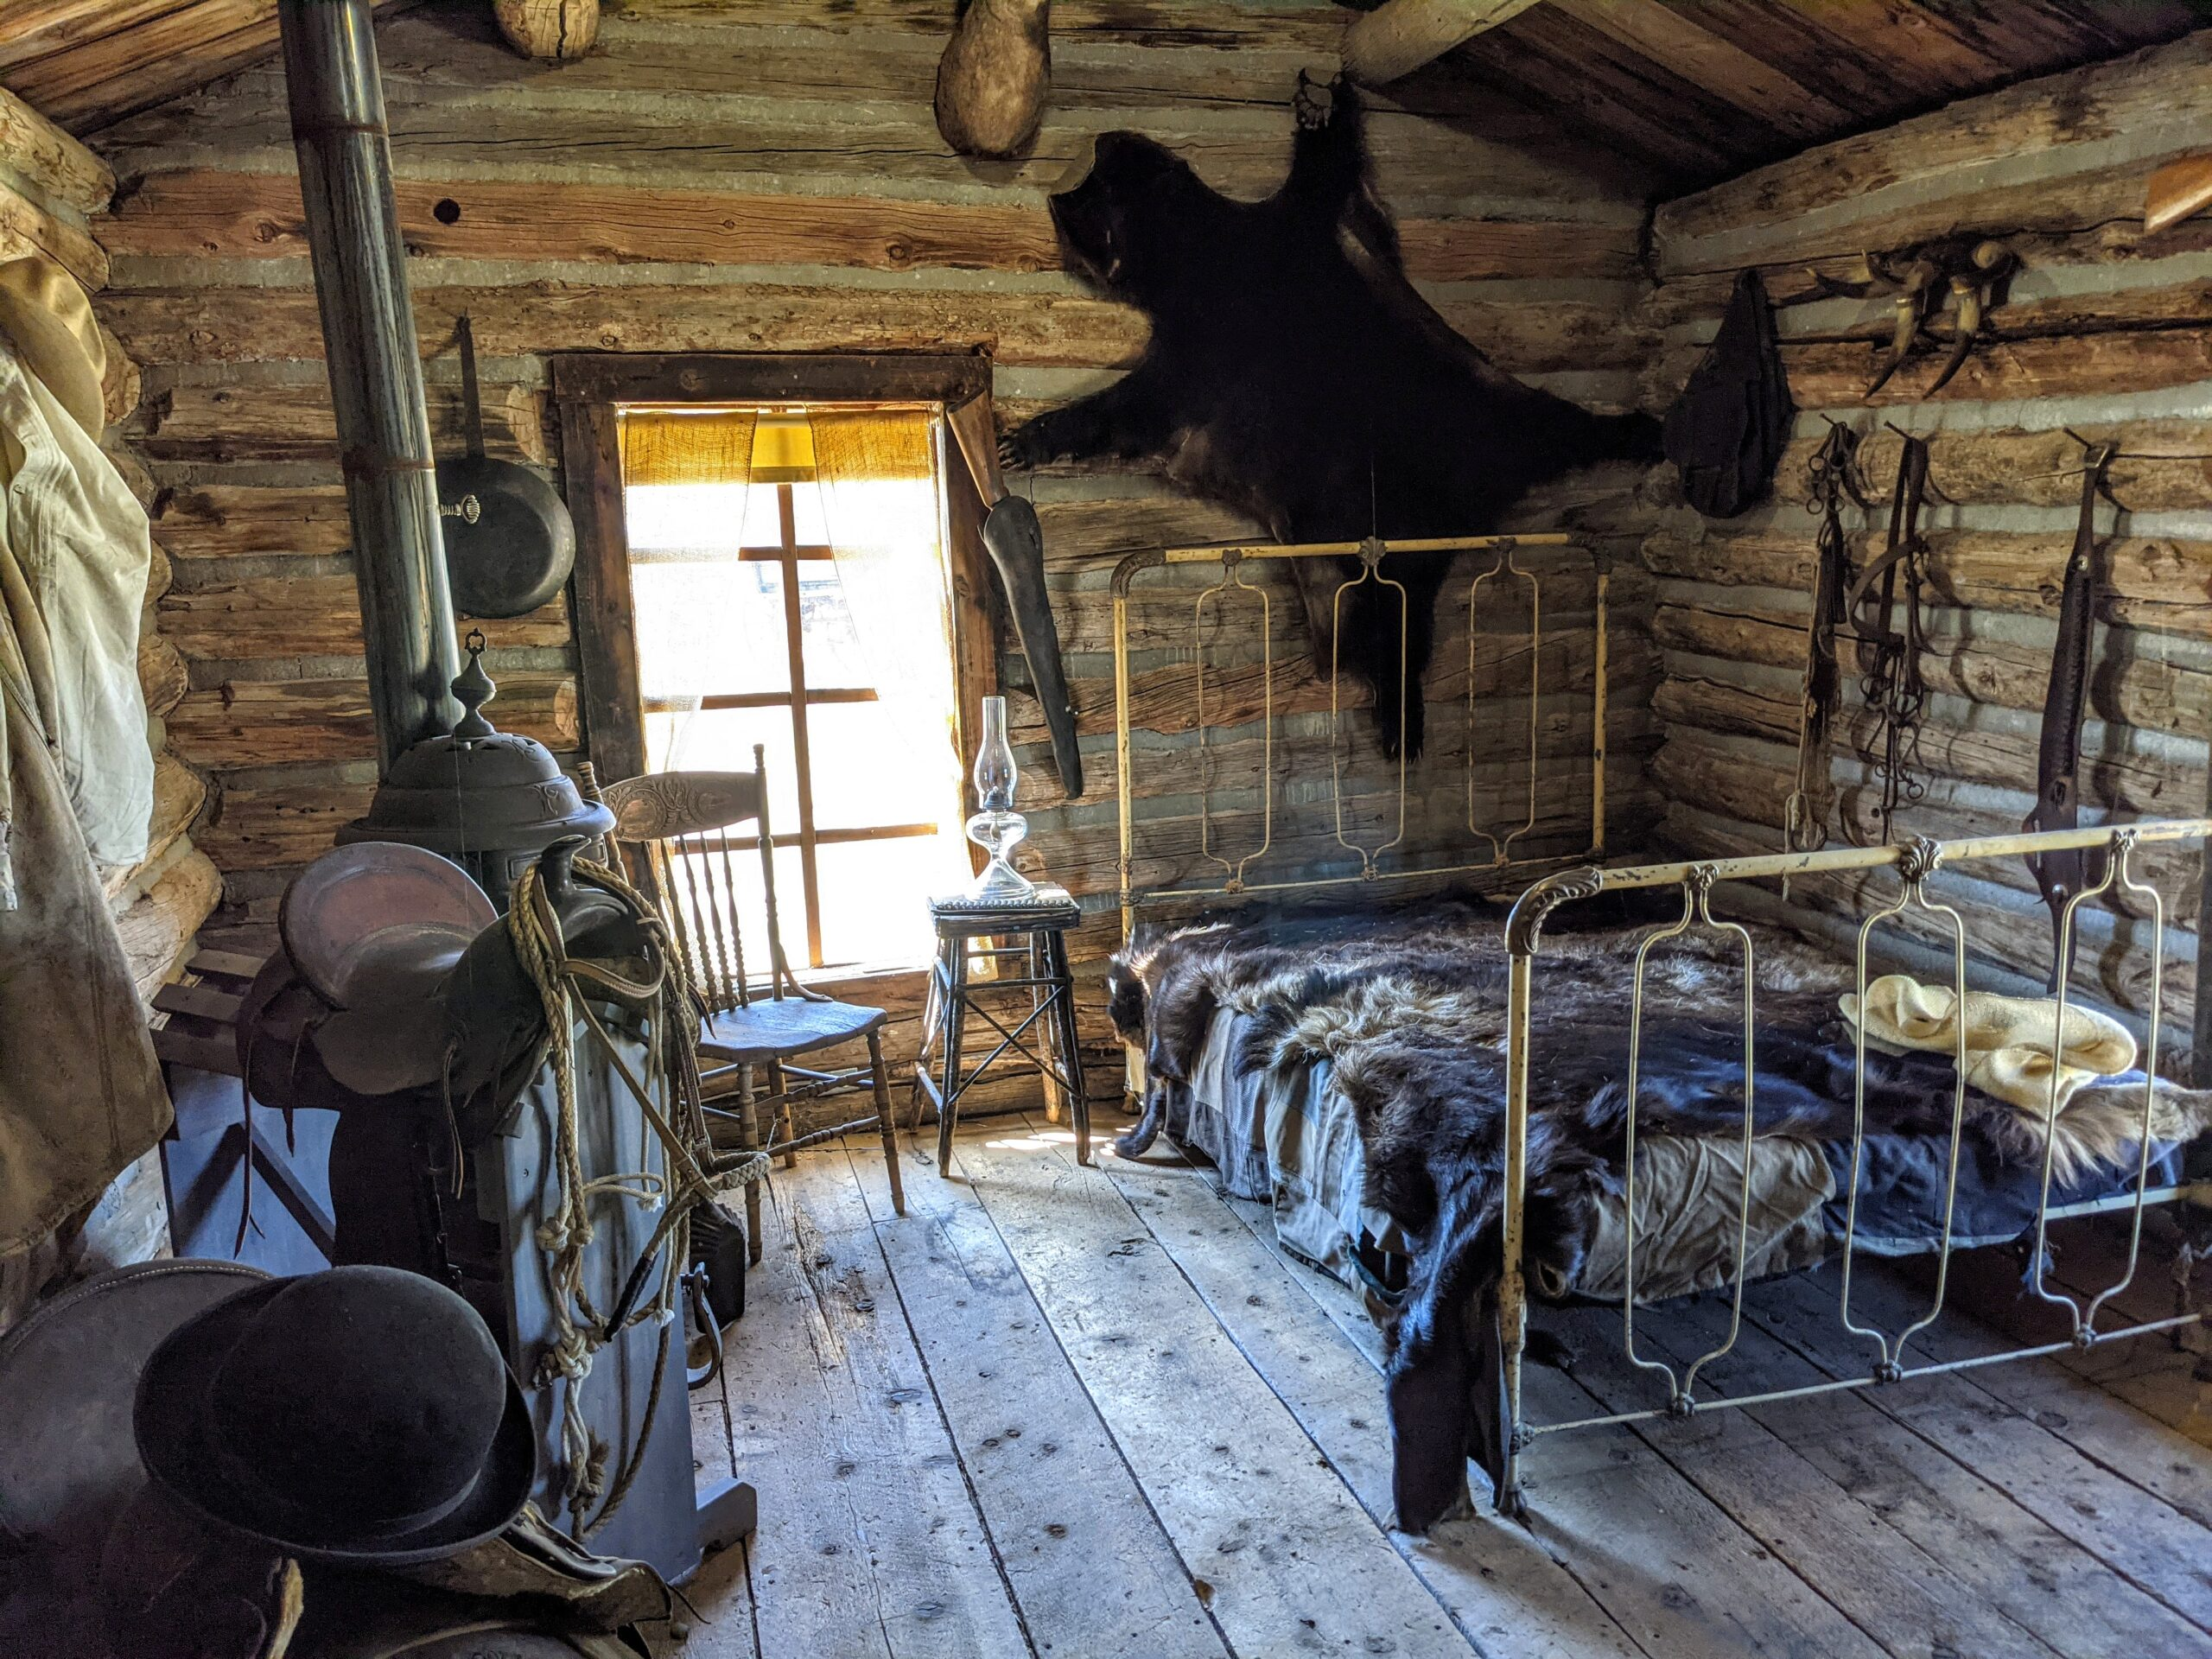 Interior of a cabin at Old Trail Town in Cody Wyoming